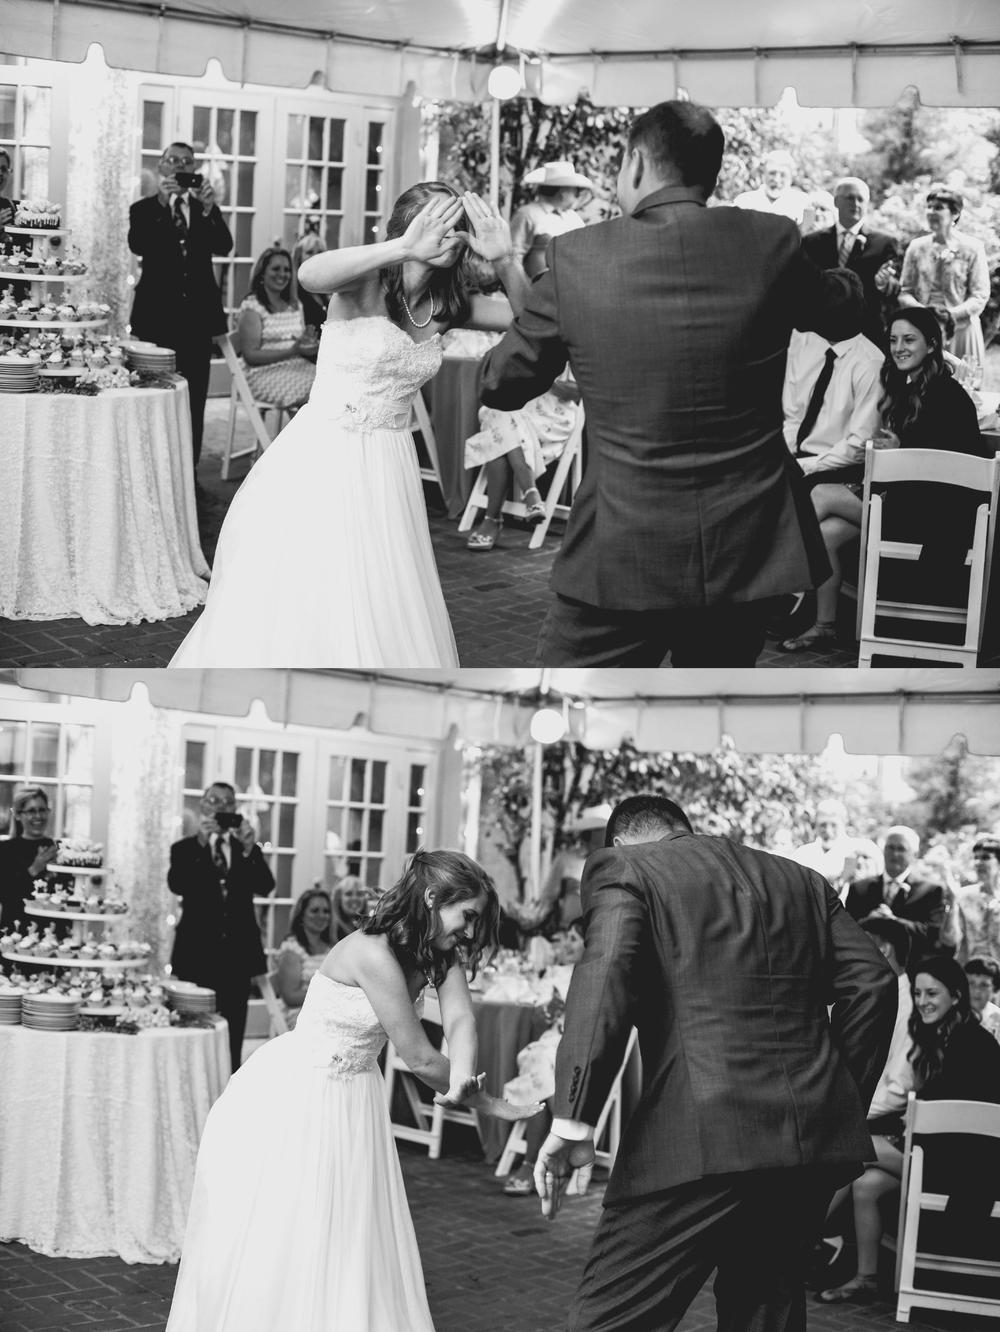 The Bride Dancing with Her Father   | #HisQueenHerEngelking Wedding | Photography by Two Arrows Photography at twoarrowsphoto.com